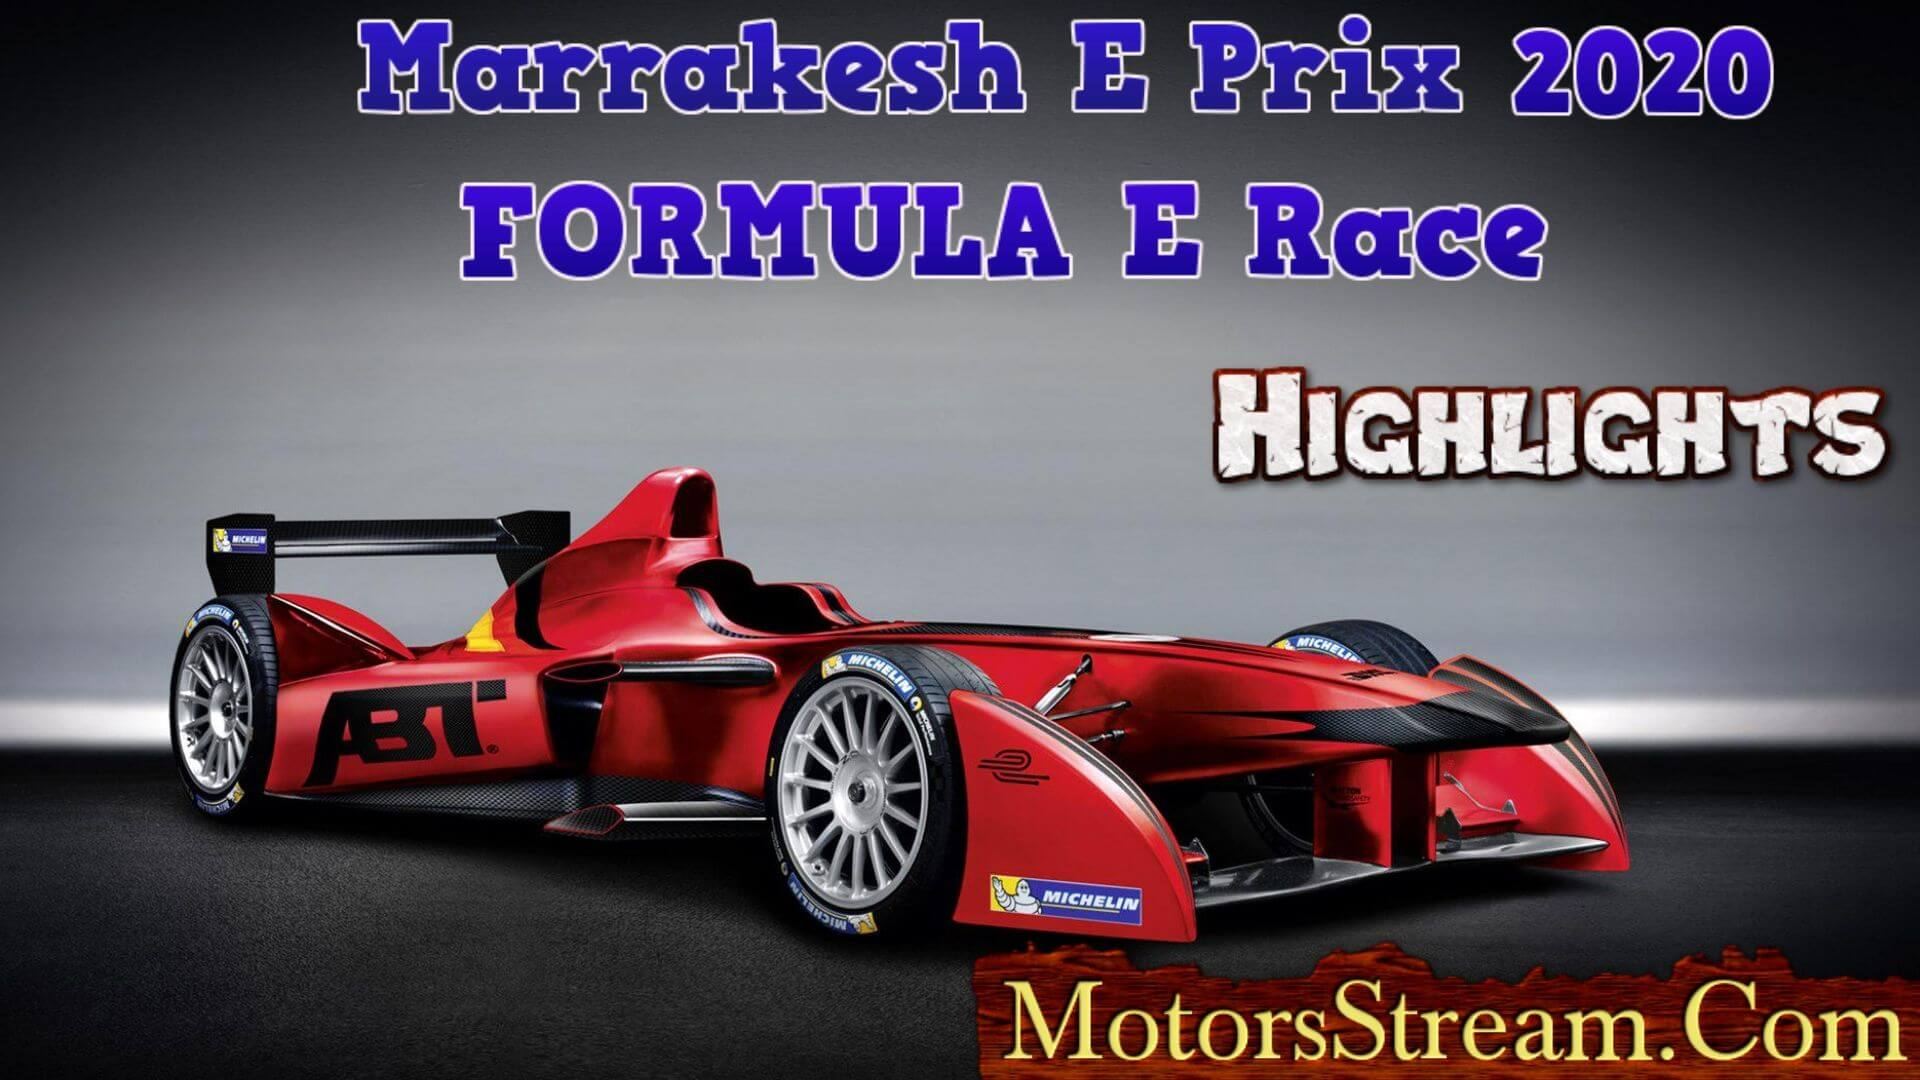 Marrakesh E Prix Highlights 2020